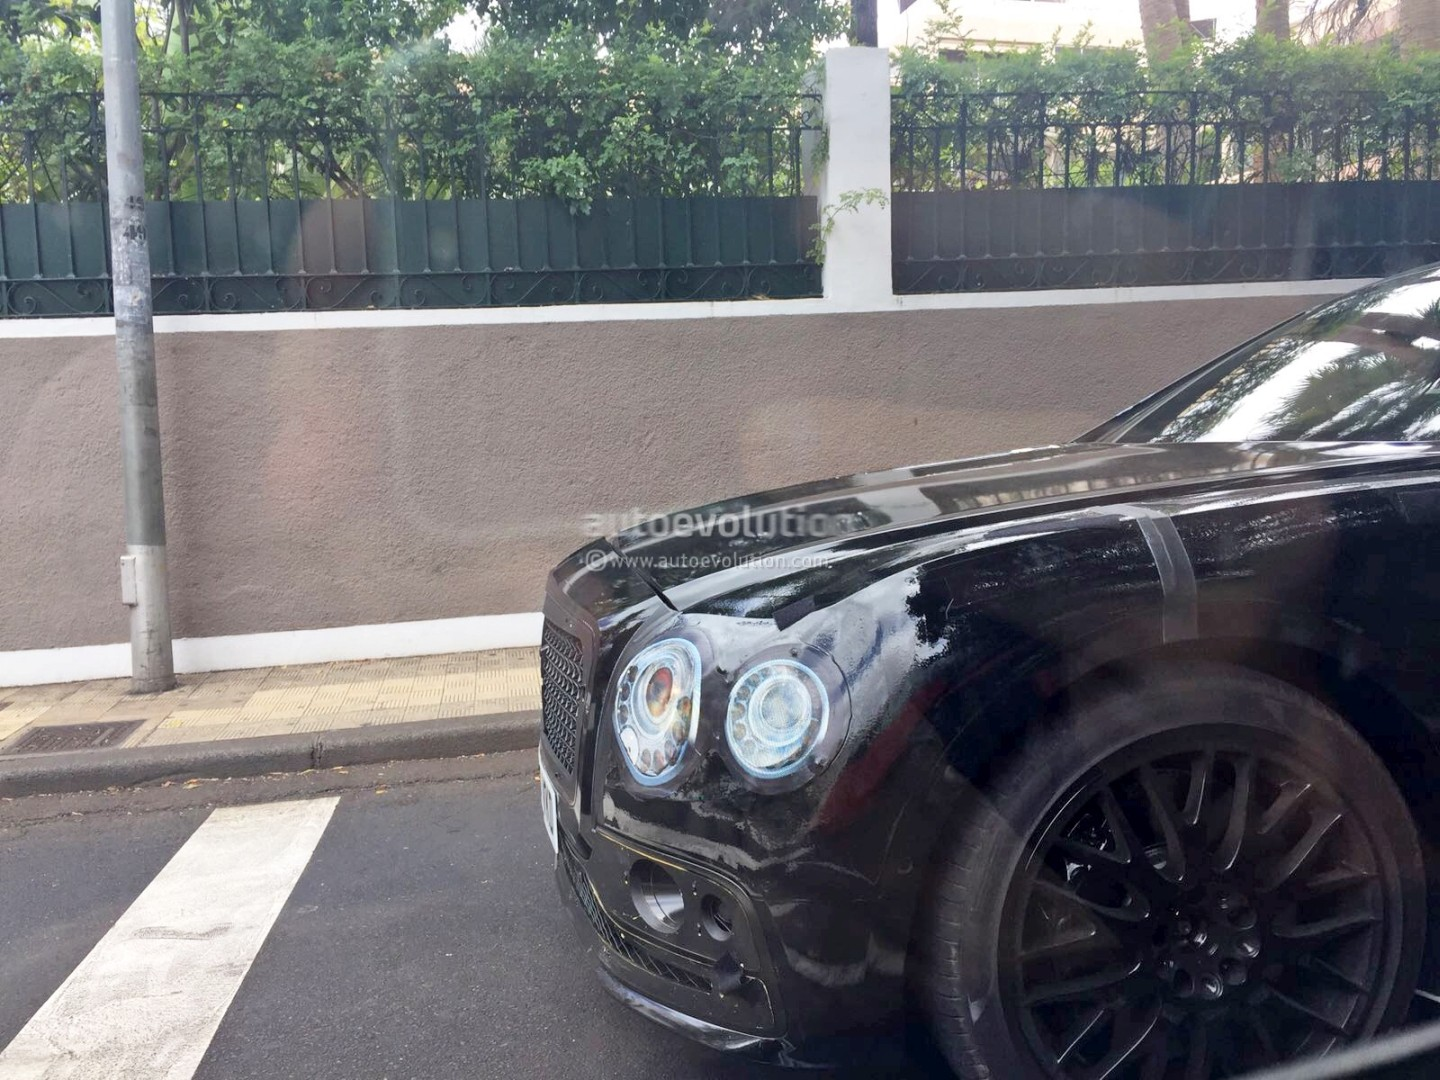 2019 - [Bentley] Flying Spur 2019-bentley-flying-spur-spied-in-madrid-prototype-shows-imposing-design_1